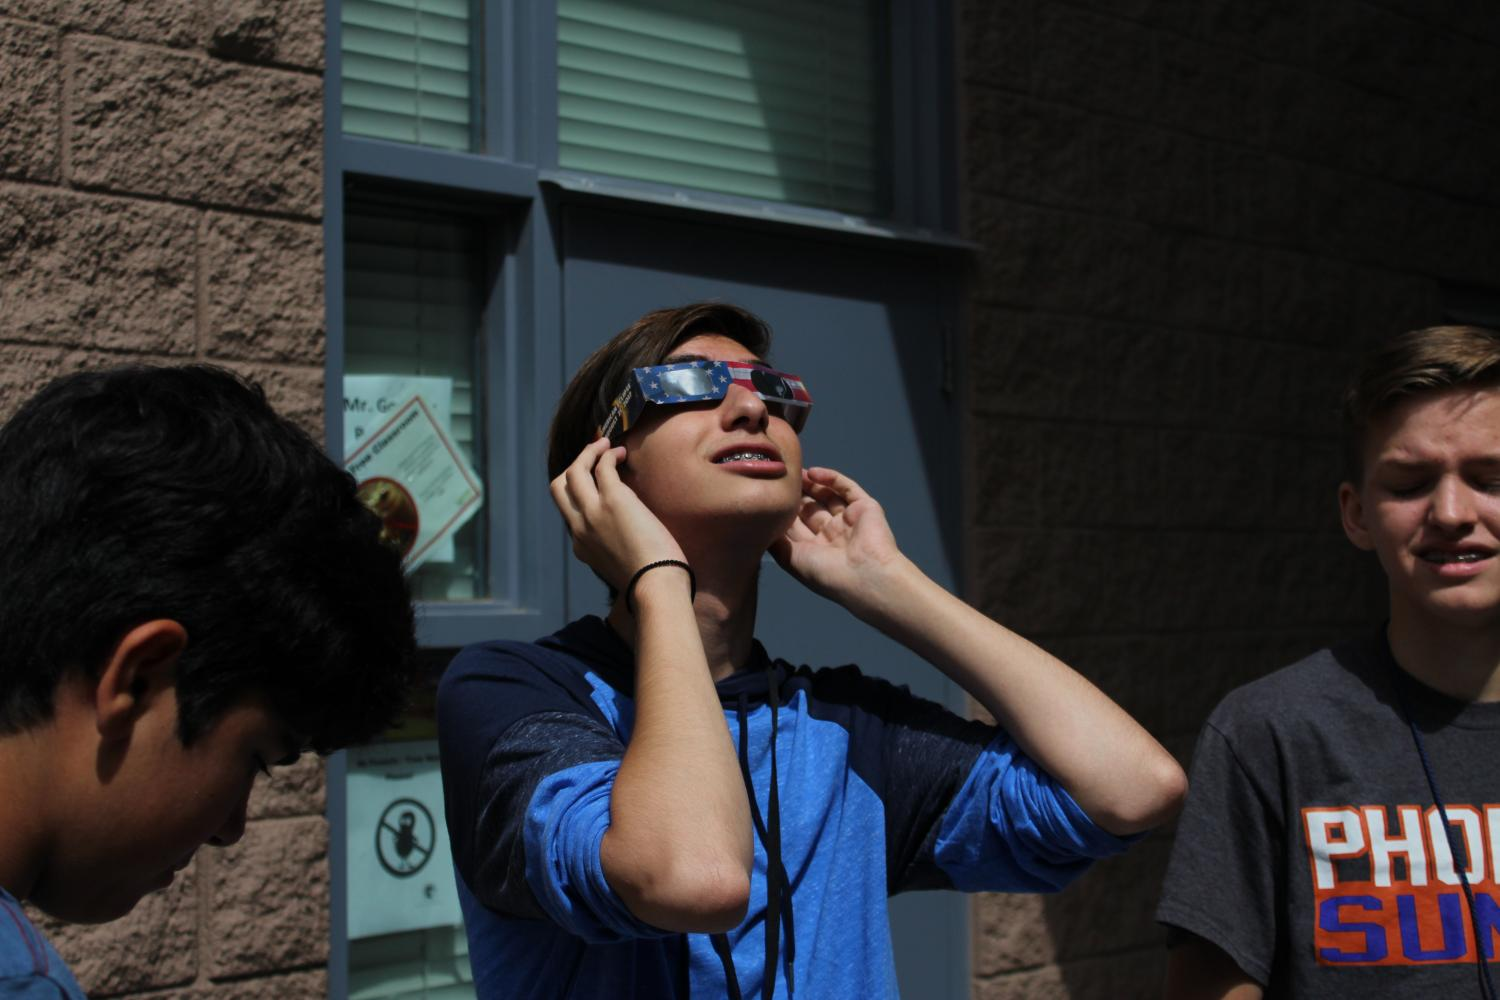 With+NASA+certified+eclipse+glasses%2C+students+safely+viewed+the+rare+phenomenon.+